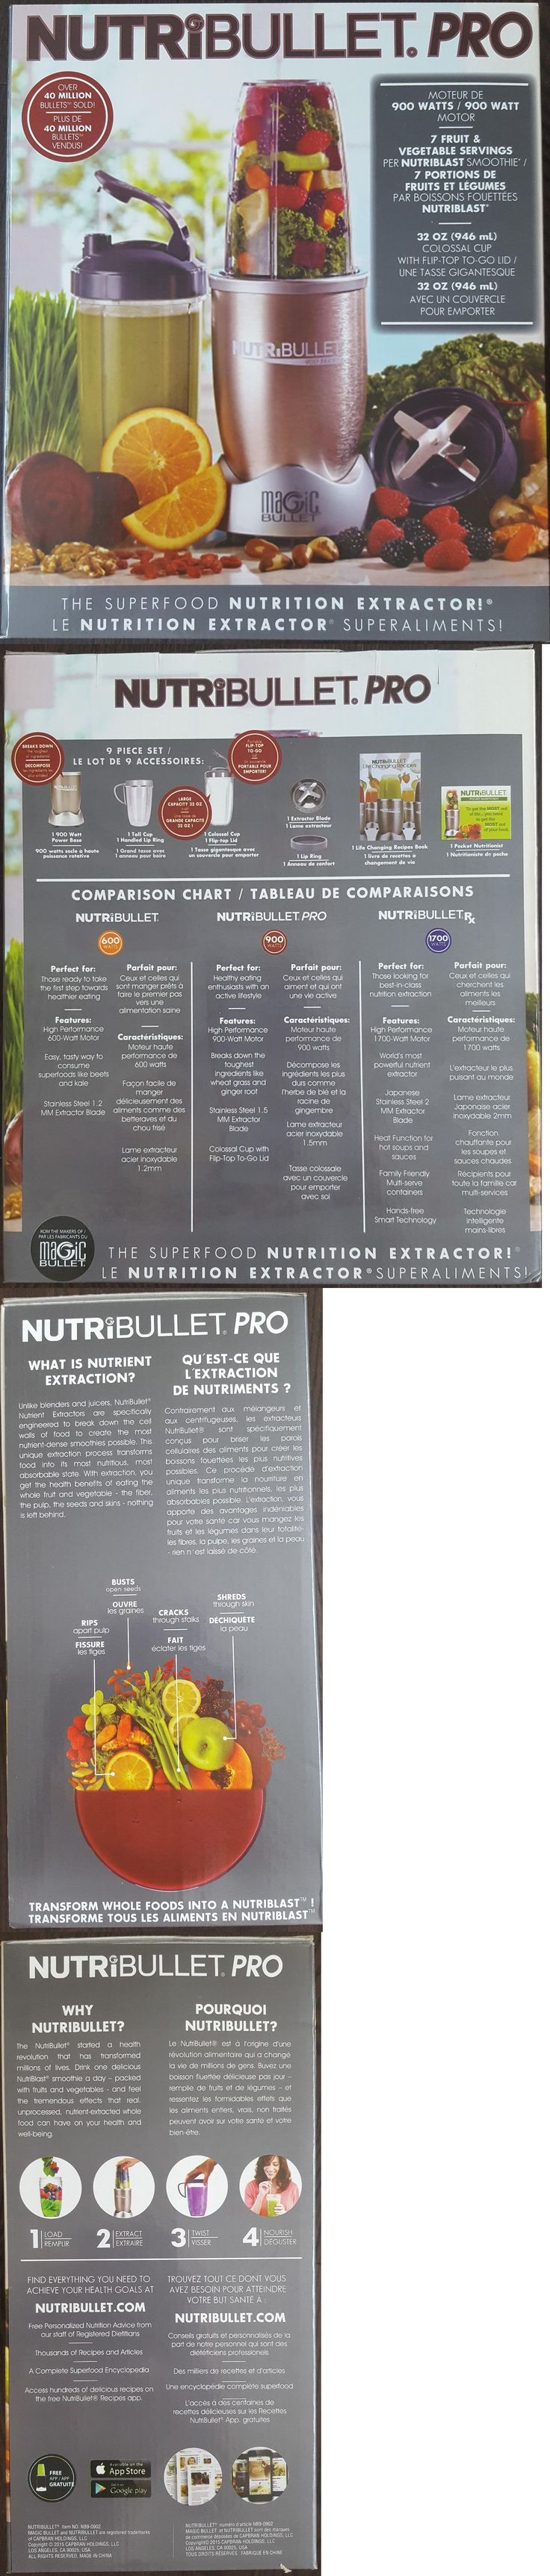 Small Kitchen Appliances: **Sale* Nutribullet Pro 9 Piece Xtractor 900 Hi-Speed Blender Mixer Set Nb9-0901 -> BUY IT NOW ONLY: $78.99 on eBay!